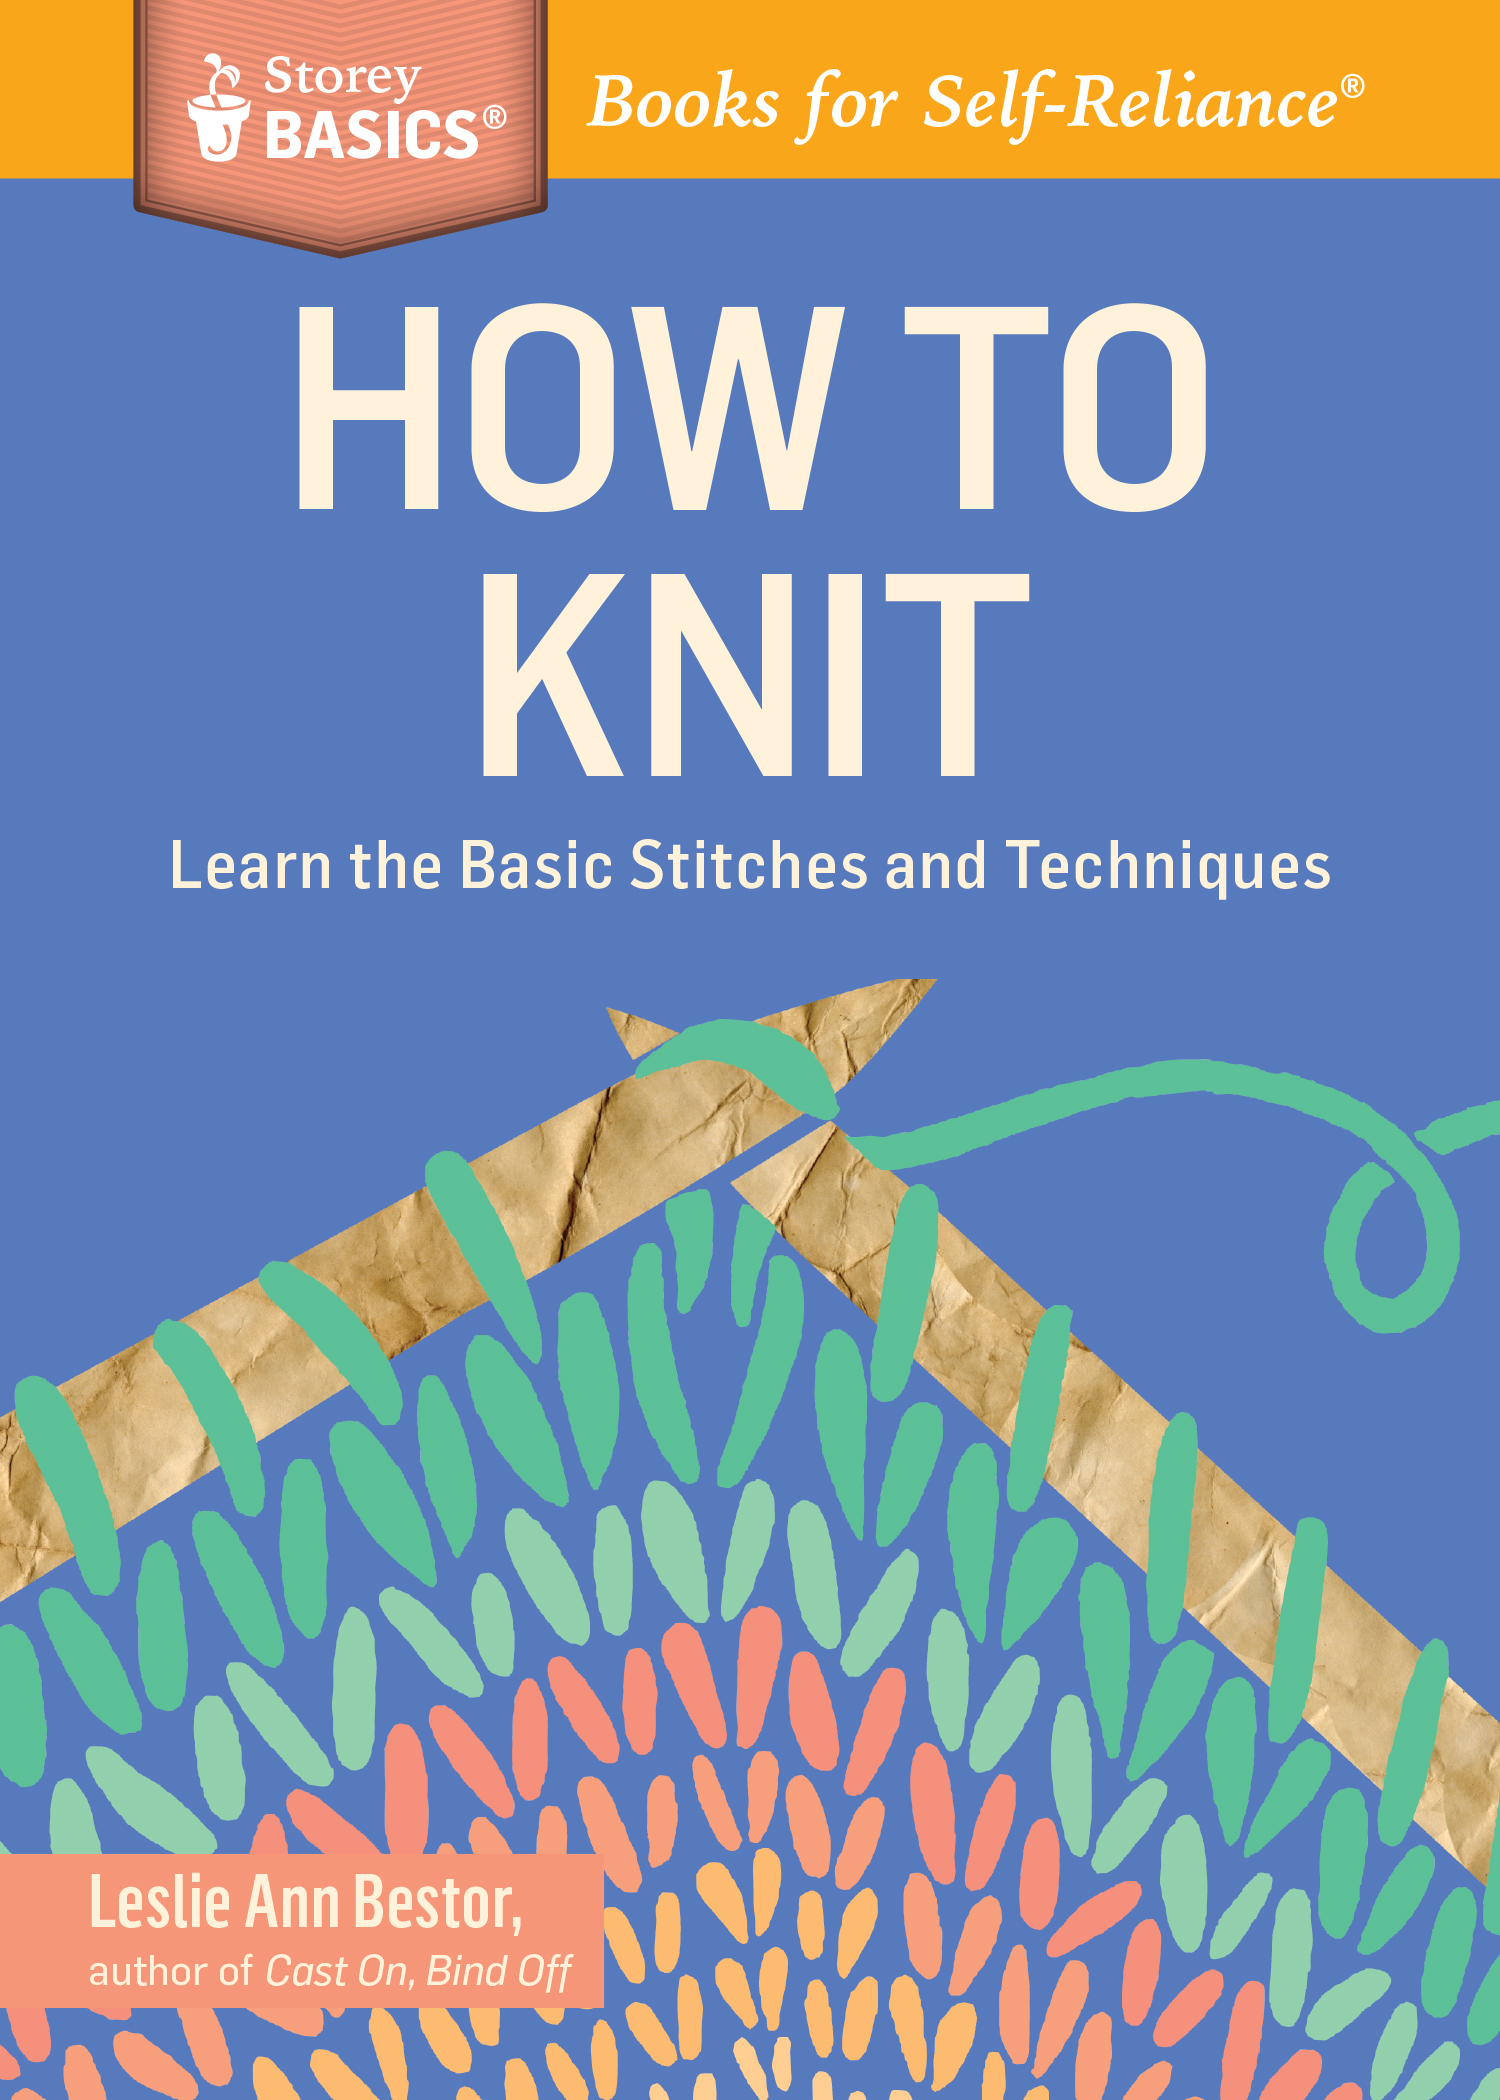 How to Knit Learn the Basic Stitches and Techniques. A Storey BASICS® Title - Leslie Ann Bestor